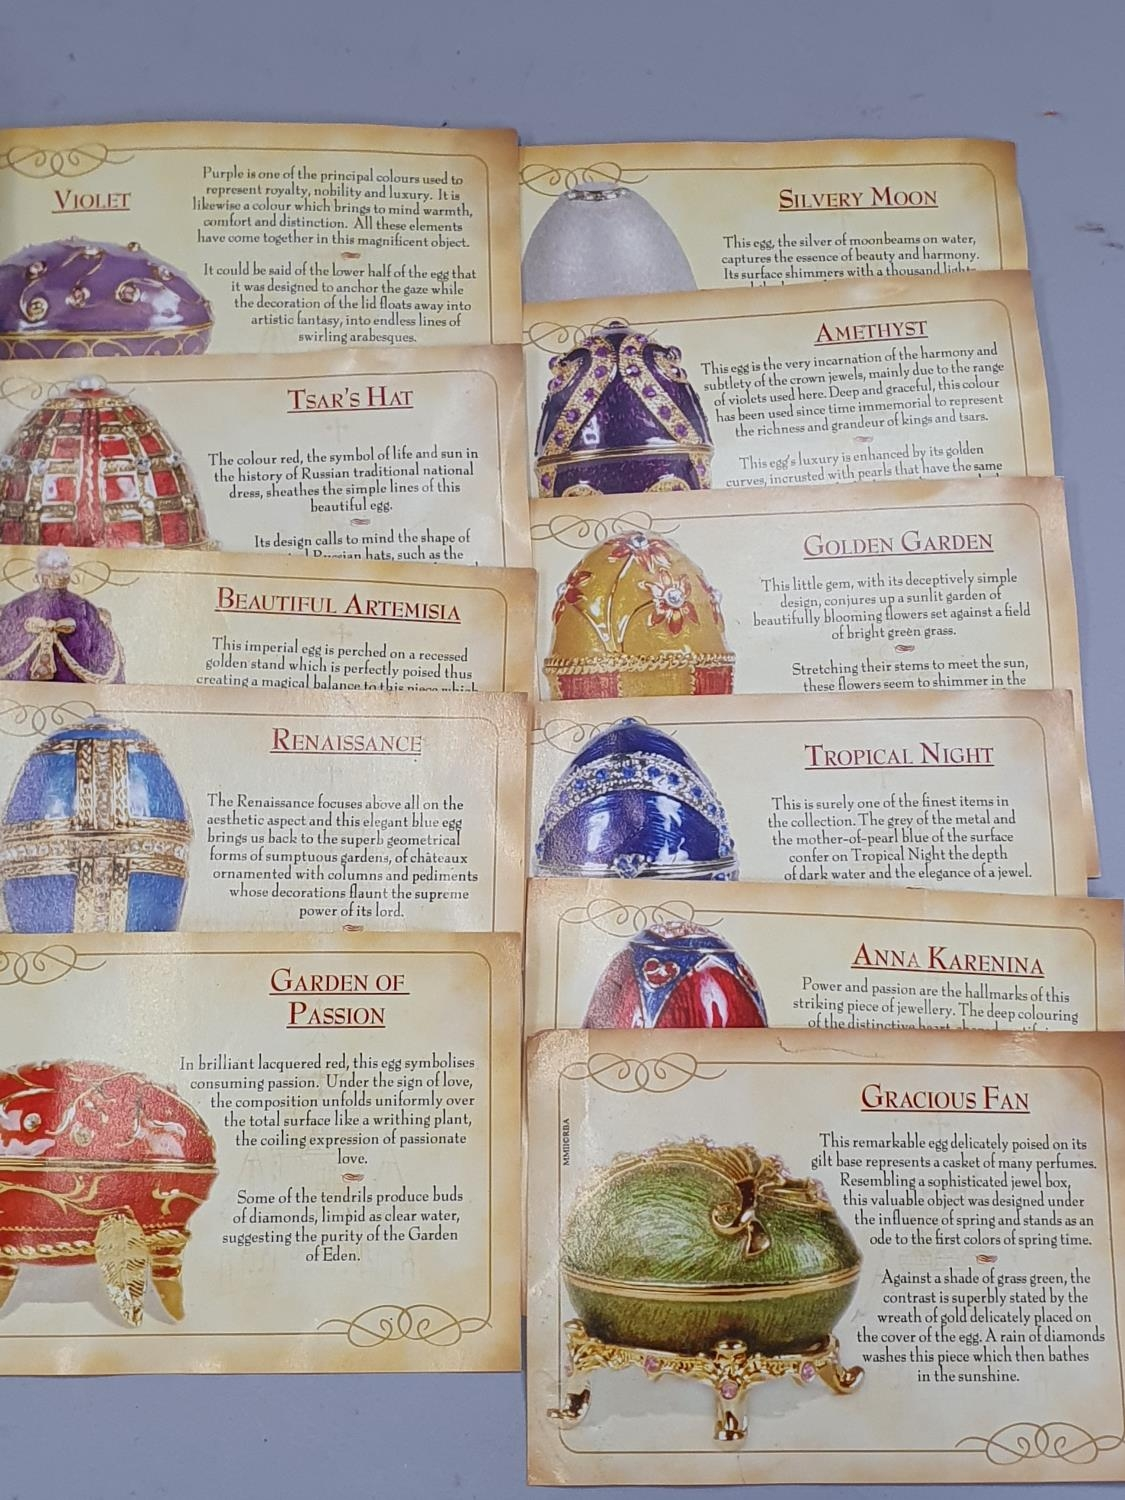 A large collection of Atlas History of Faberge eggs spoons. - Image 4 of 4